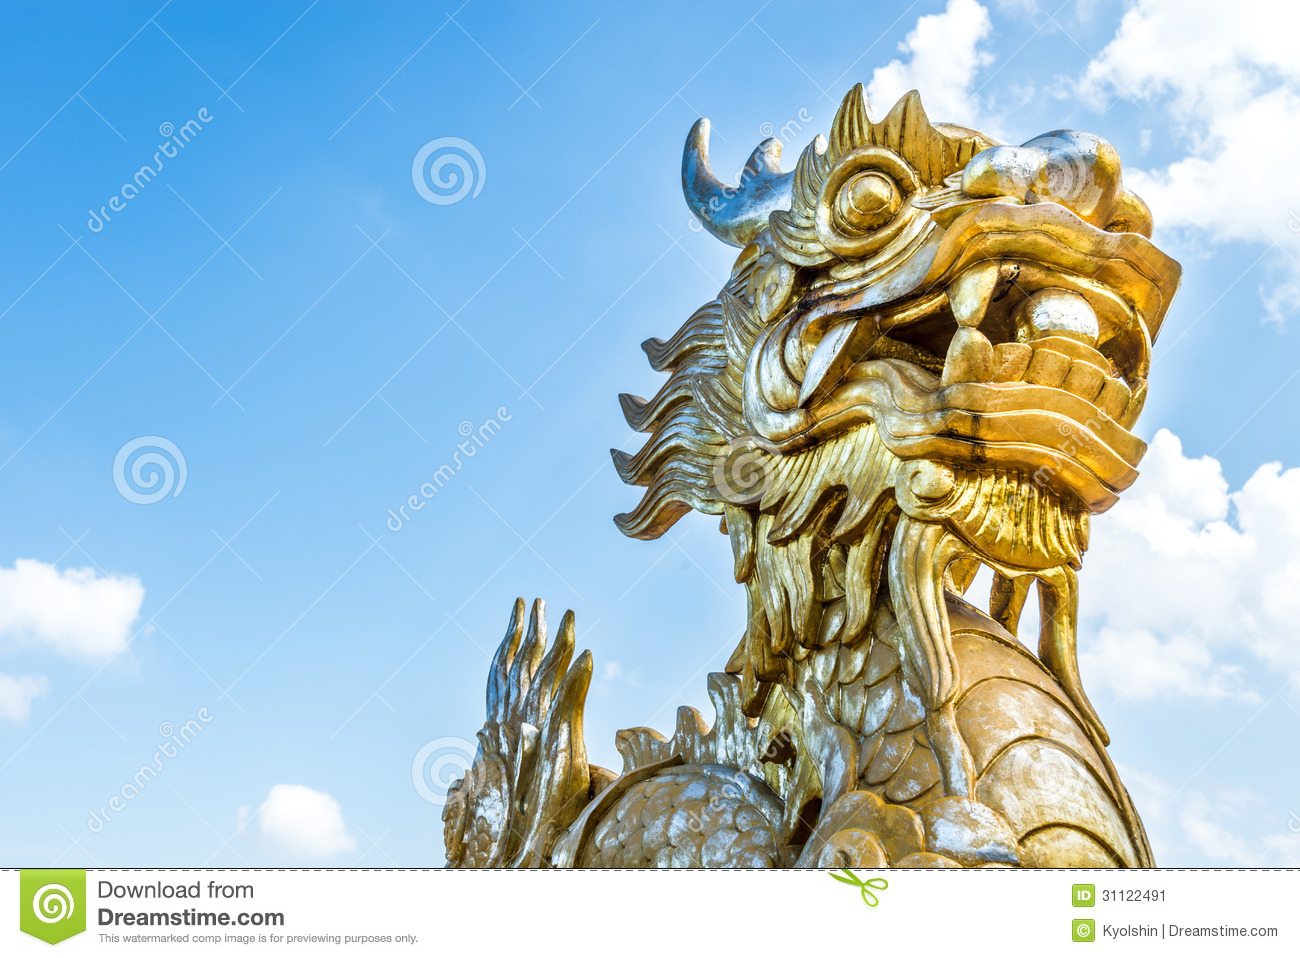 Vietnamese Dragon: Dragon Statue In Vietnam As Symbol And Myth. Stock Image